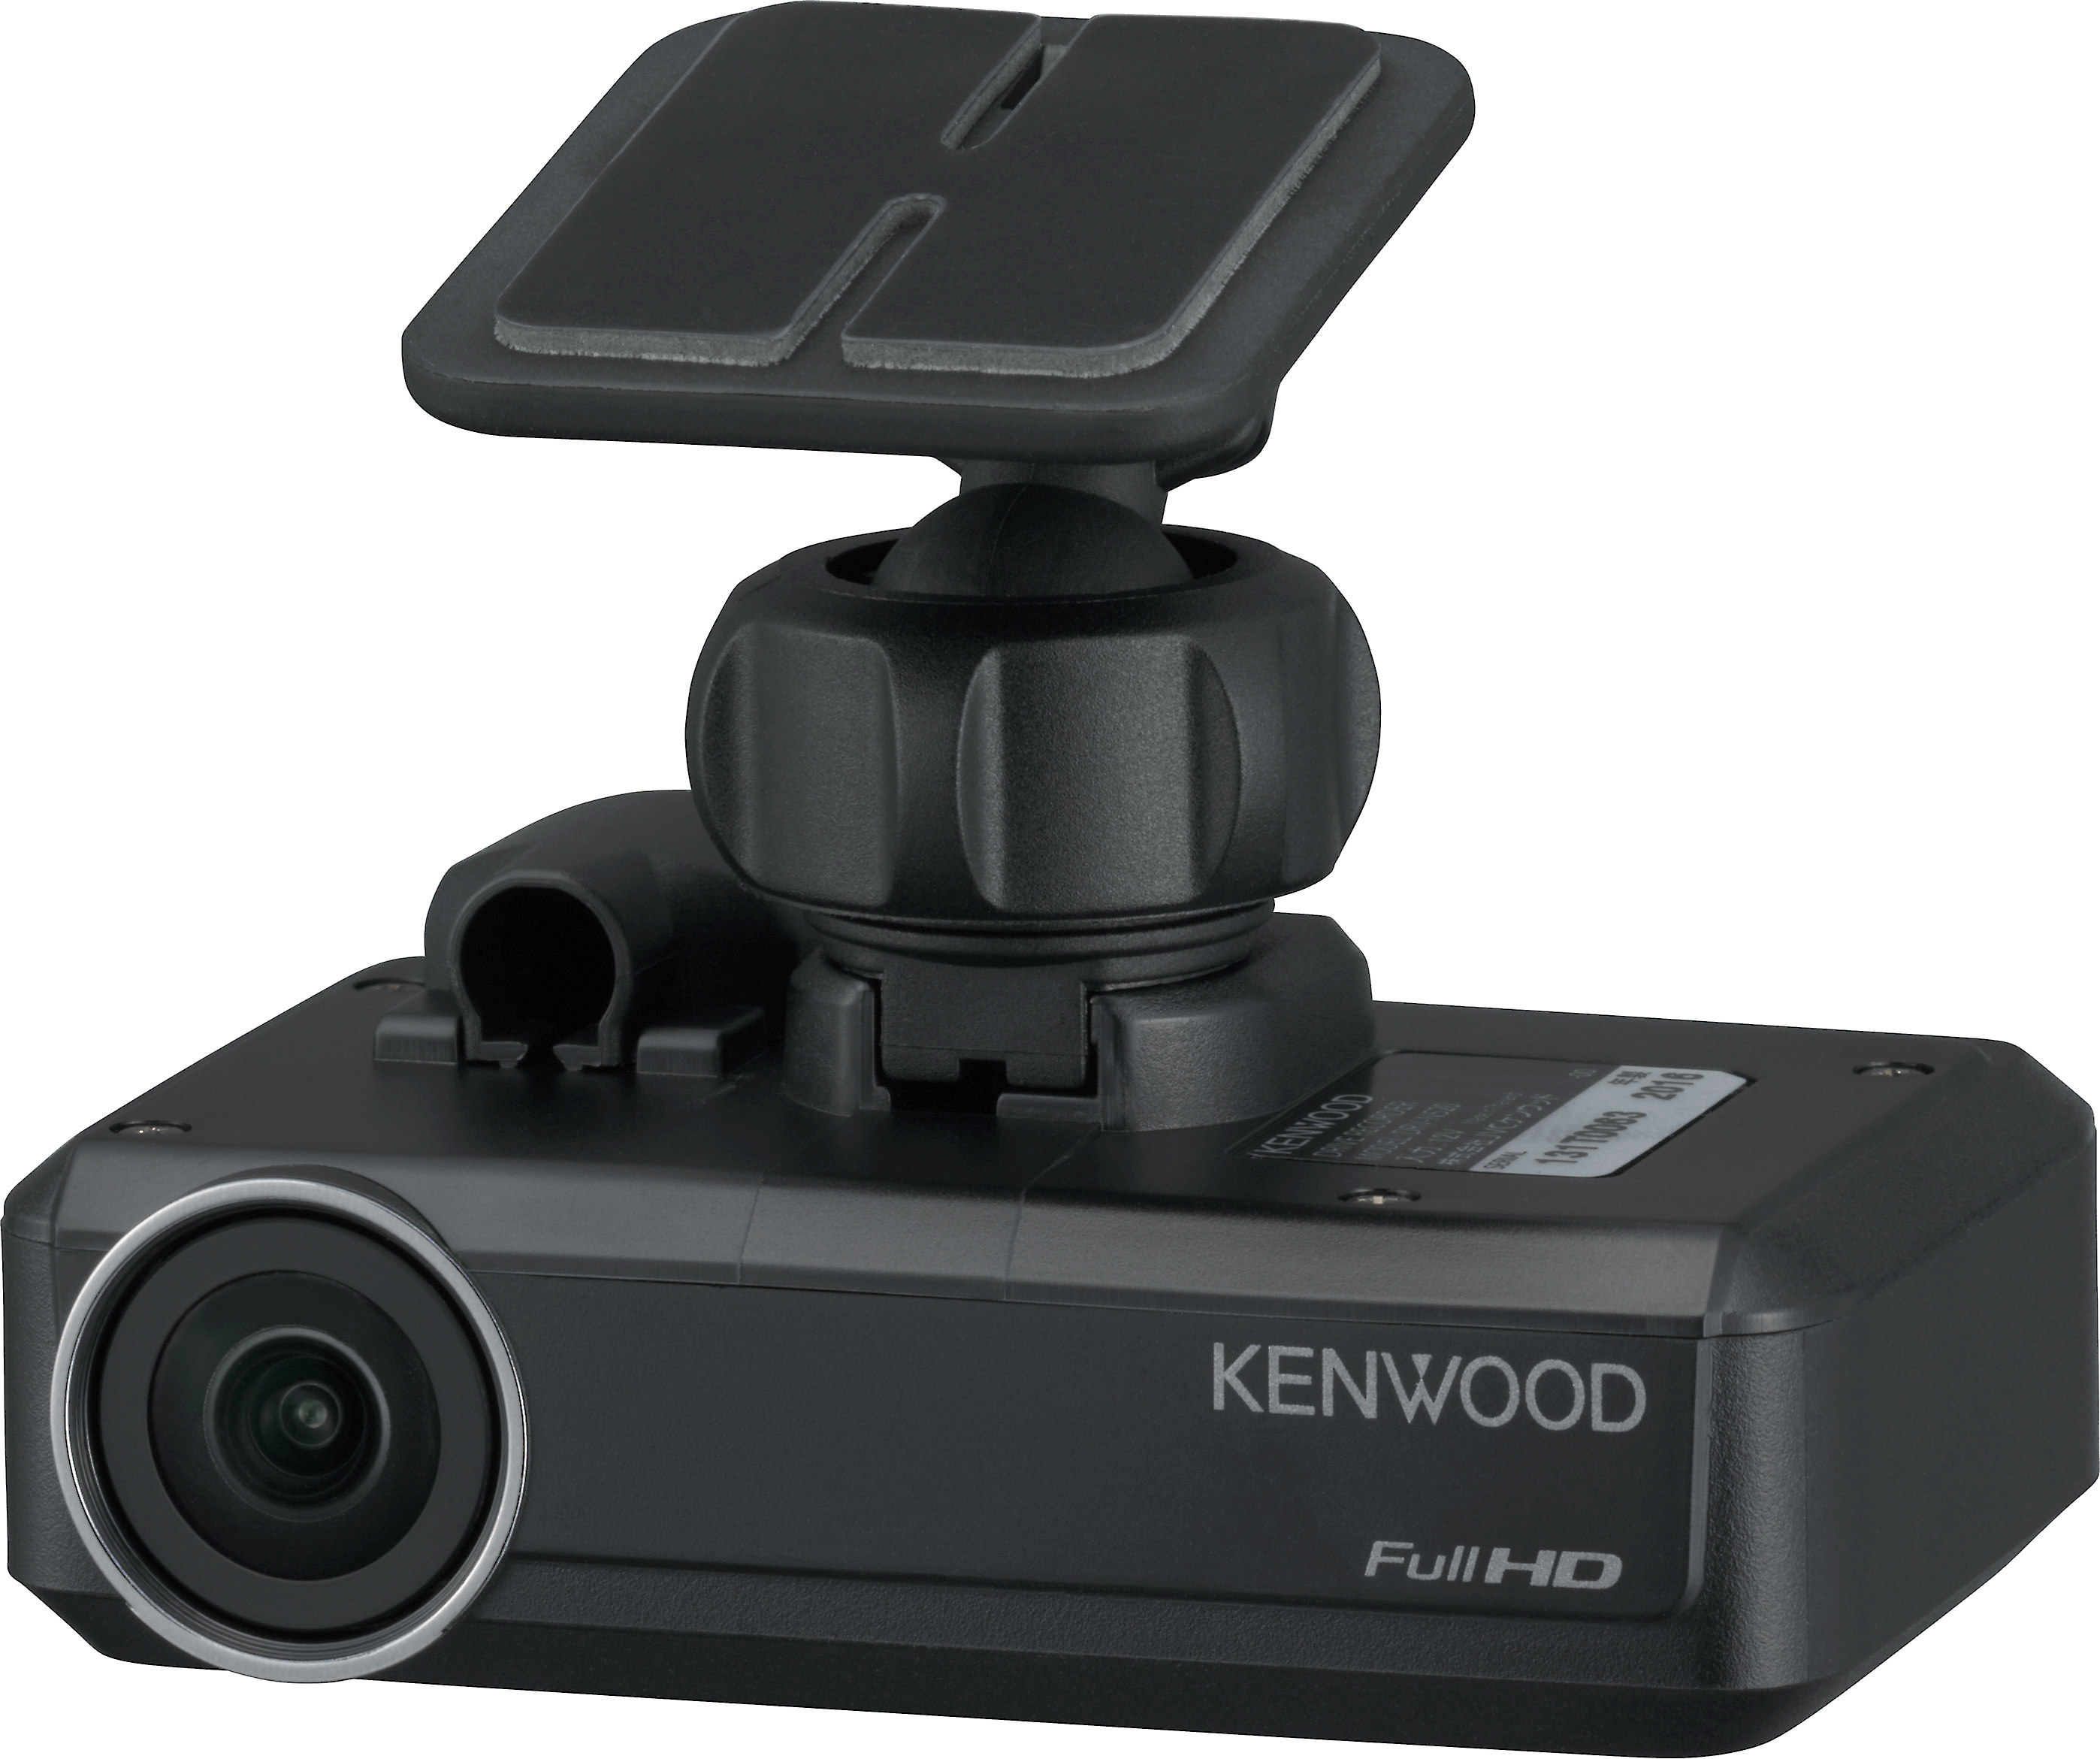 READ CONDITION Dash Cam Kenwood DRV-320 Video Recorder Portable Dashboard Used